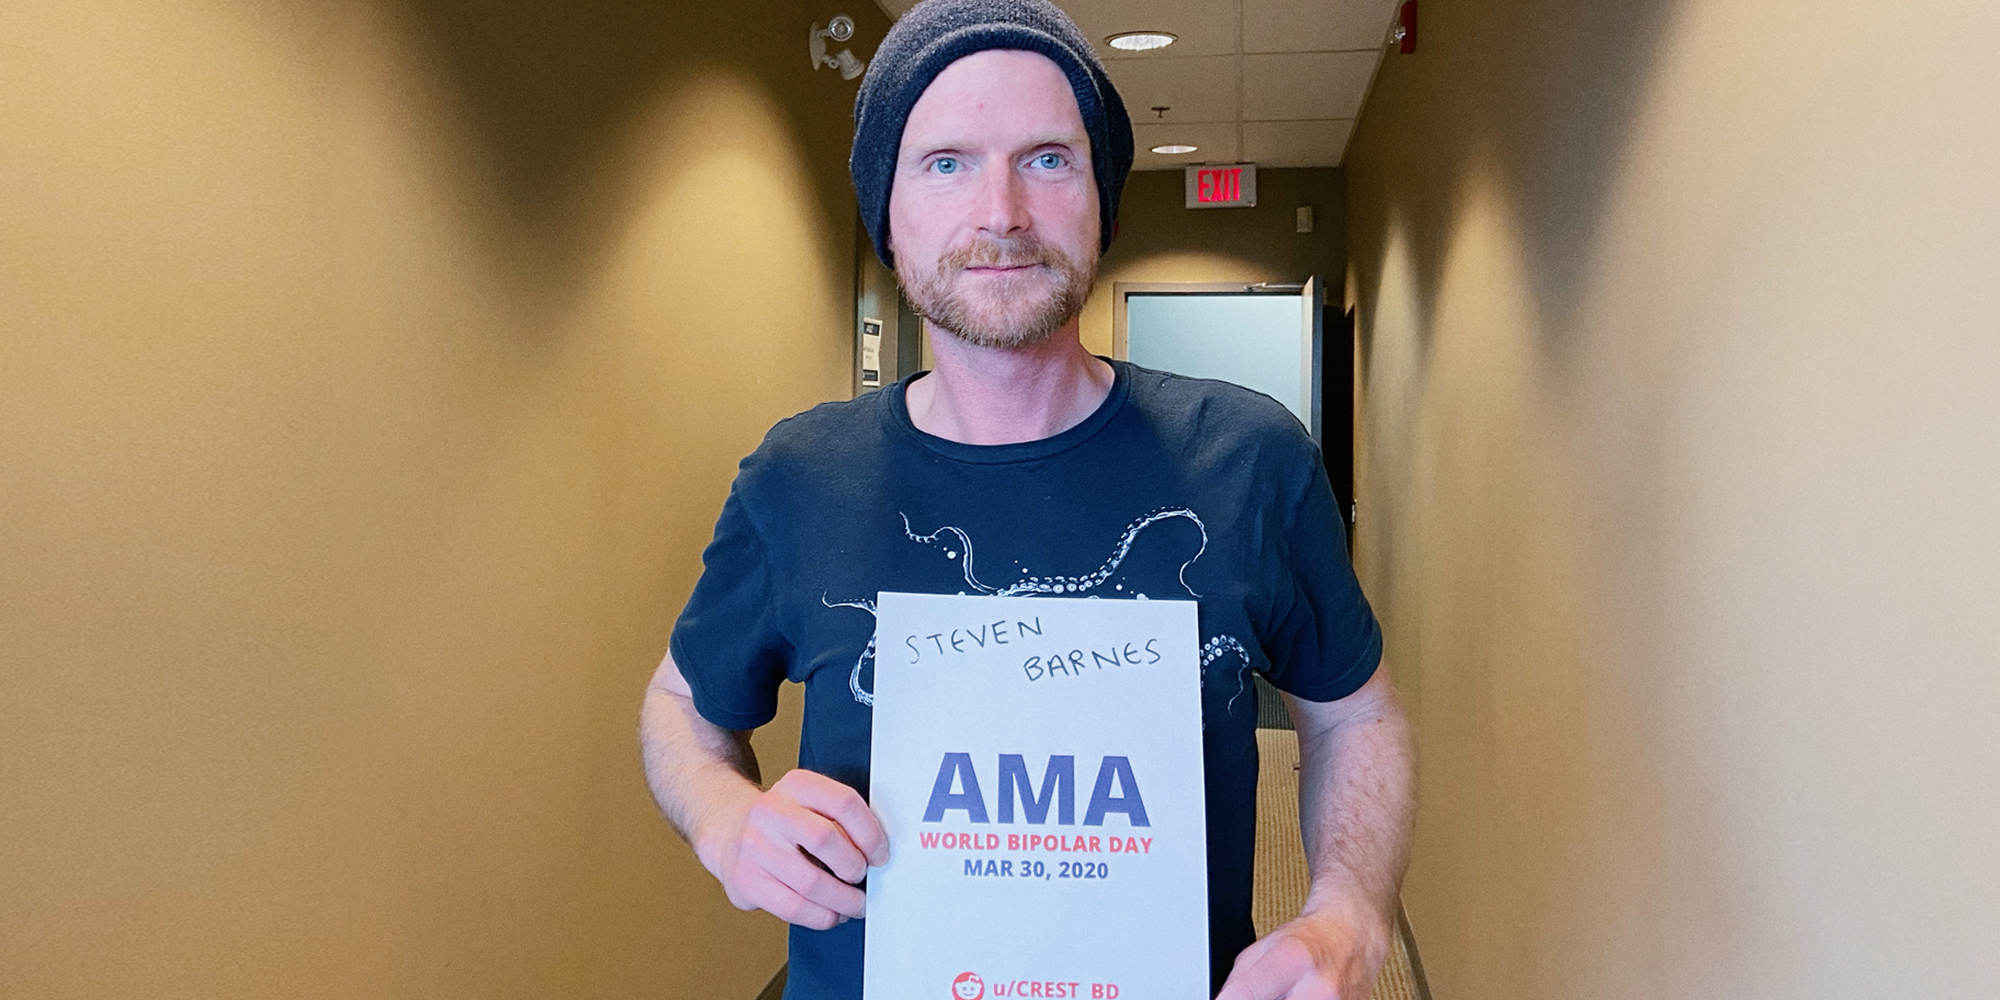 Dr. Barnes holding a sign proving he will be involved in the bipolar ama.